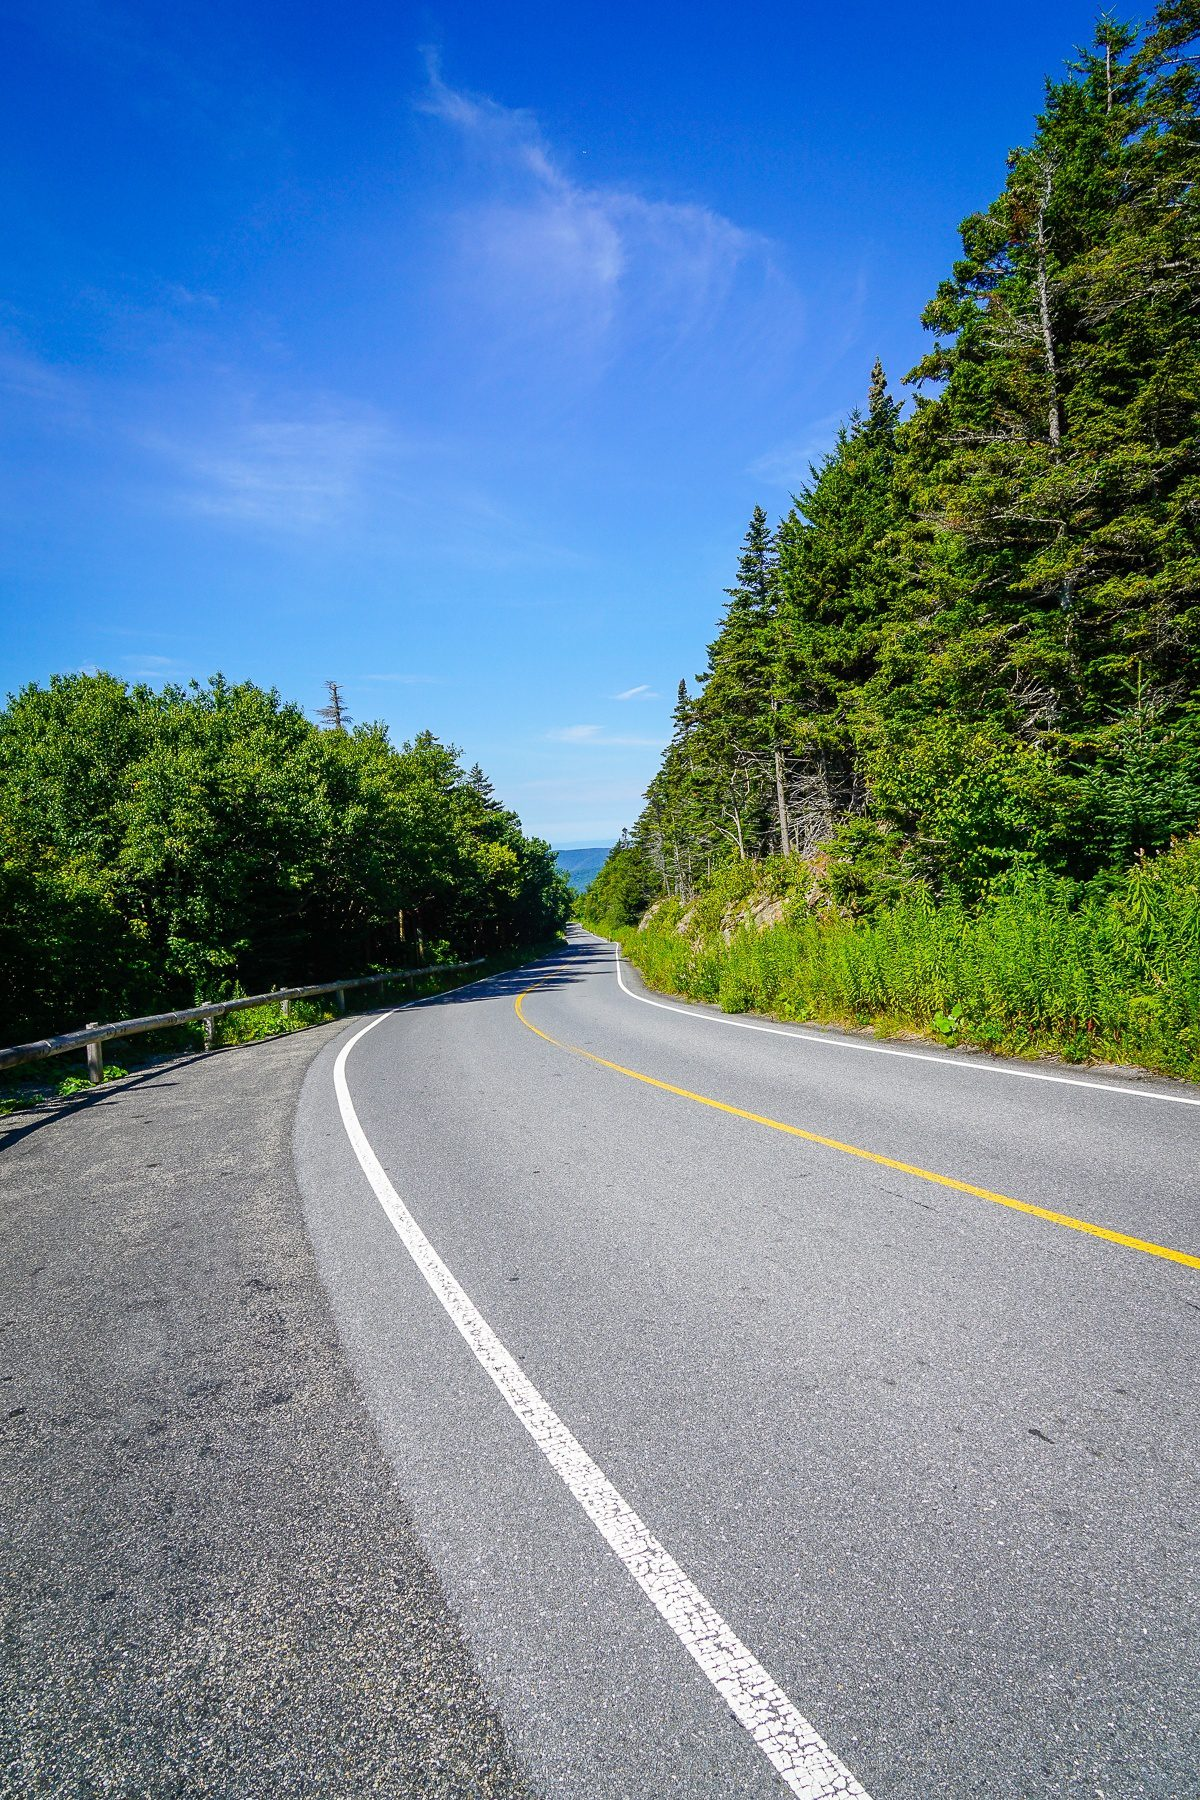 Planning travel to Mount Greylock, the highest point in Massachusetts? Here's the easiest way up the mountain to see great New England views, even with young kids.